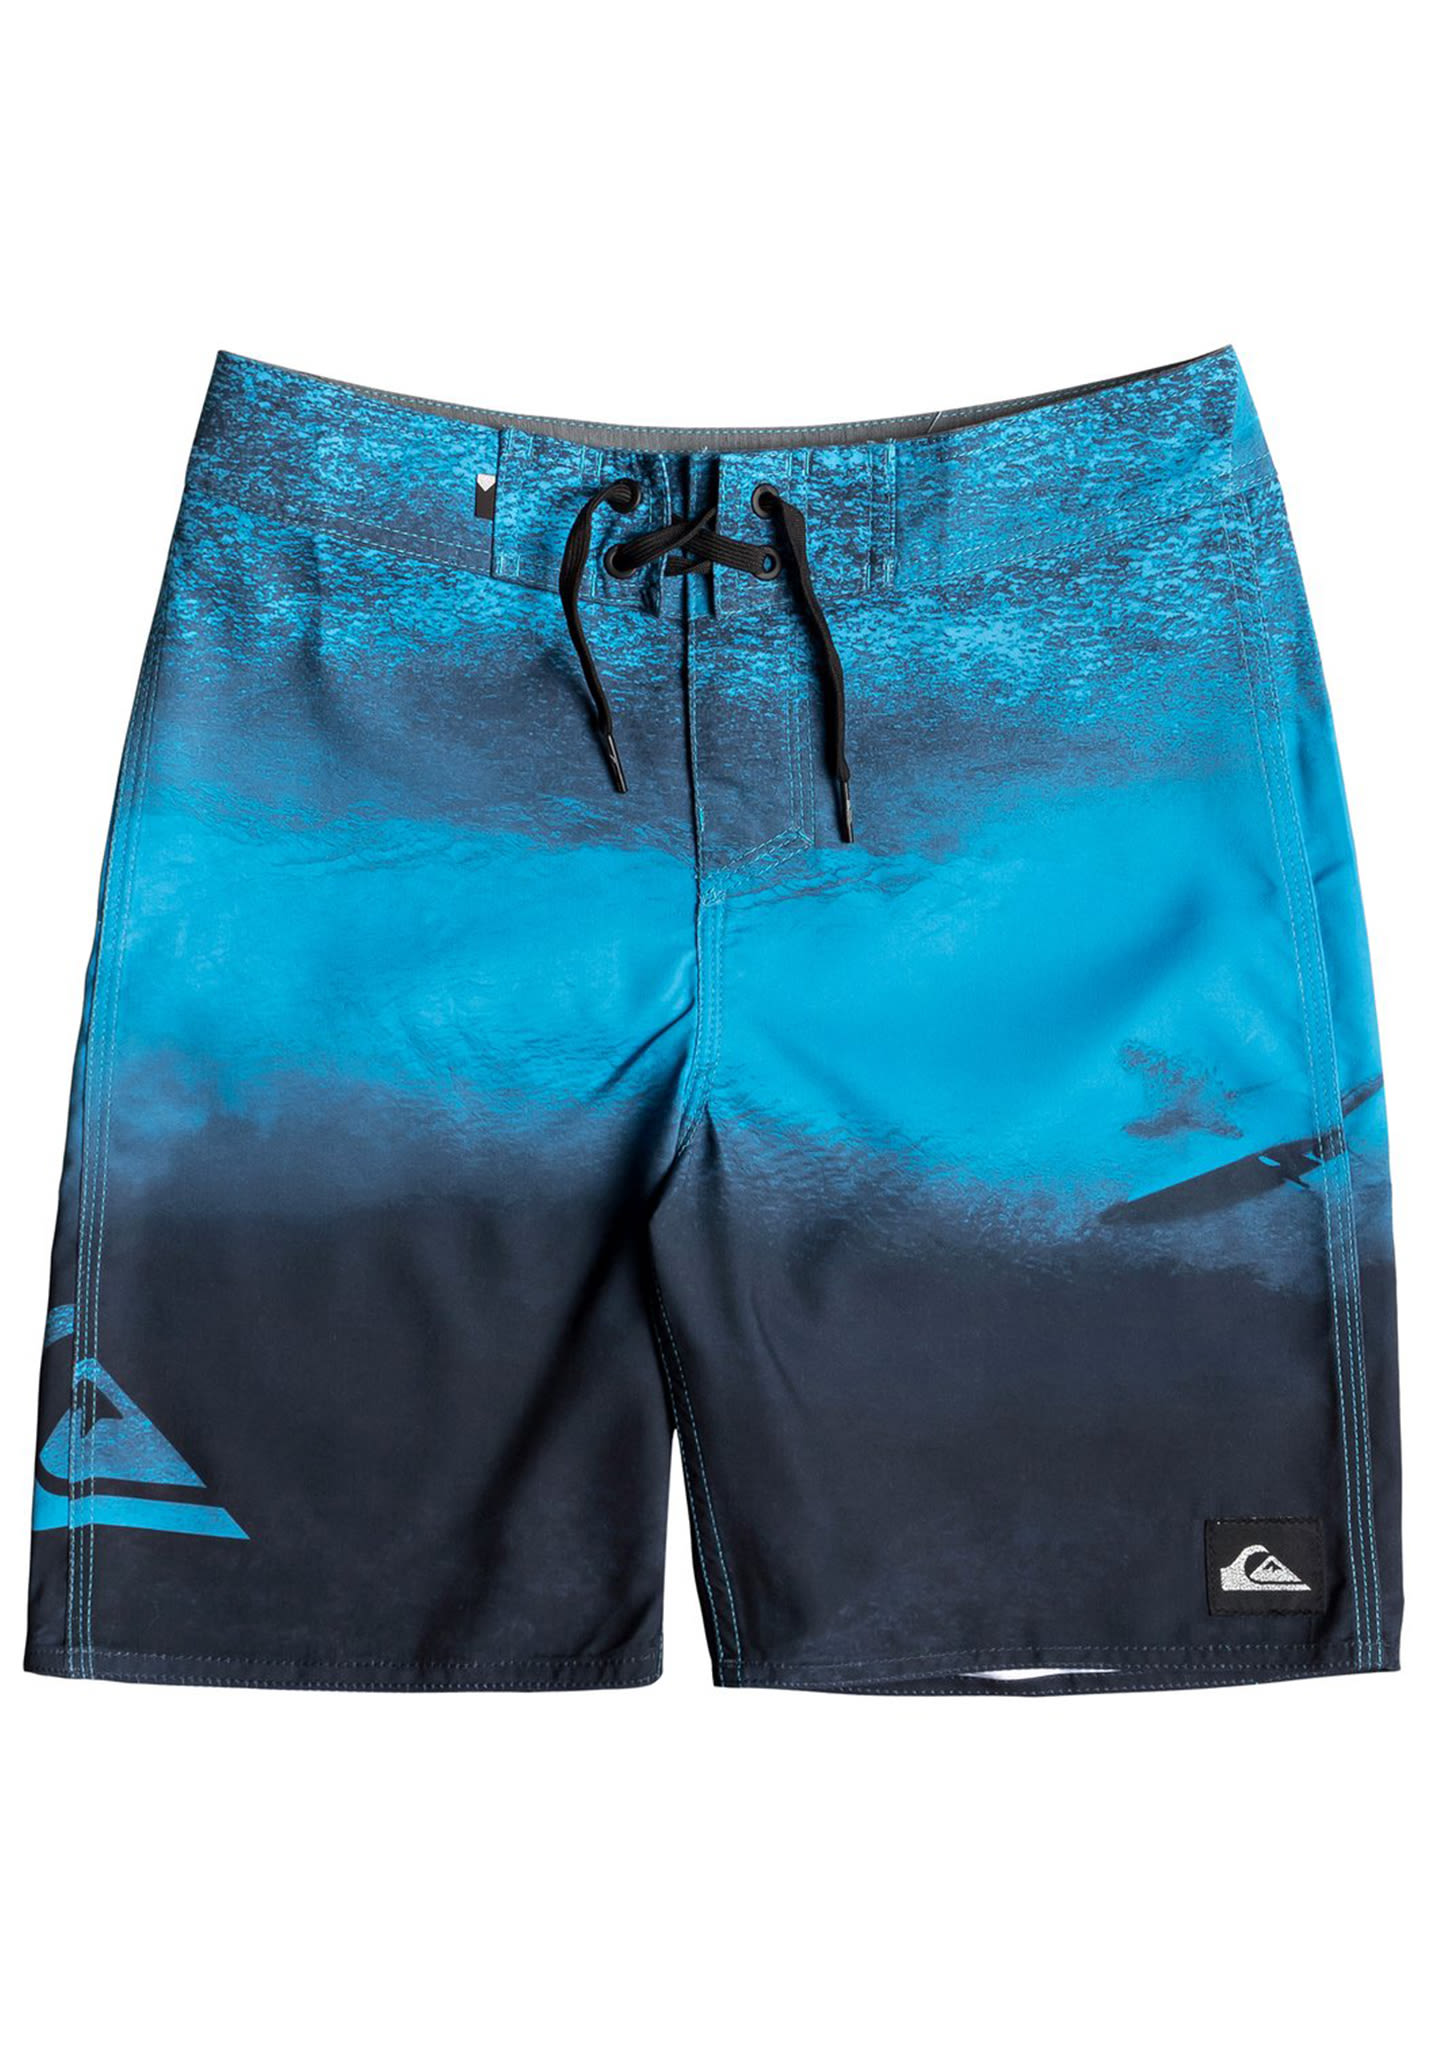 4f9362653b Quiksilver Everyday Heaven 17 - Boardshorts for Kids Boys - Blue - Planet  Sports